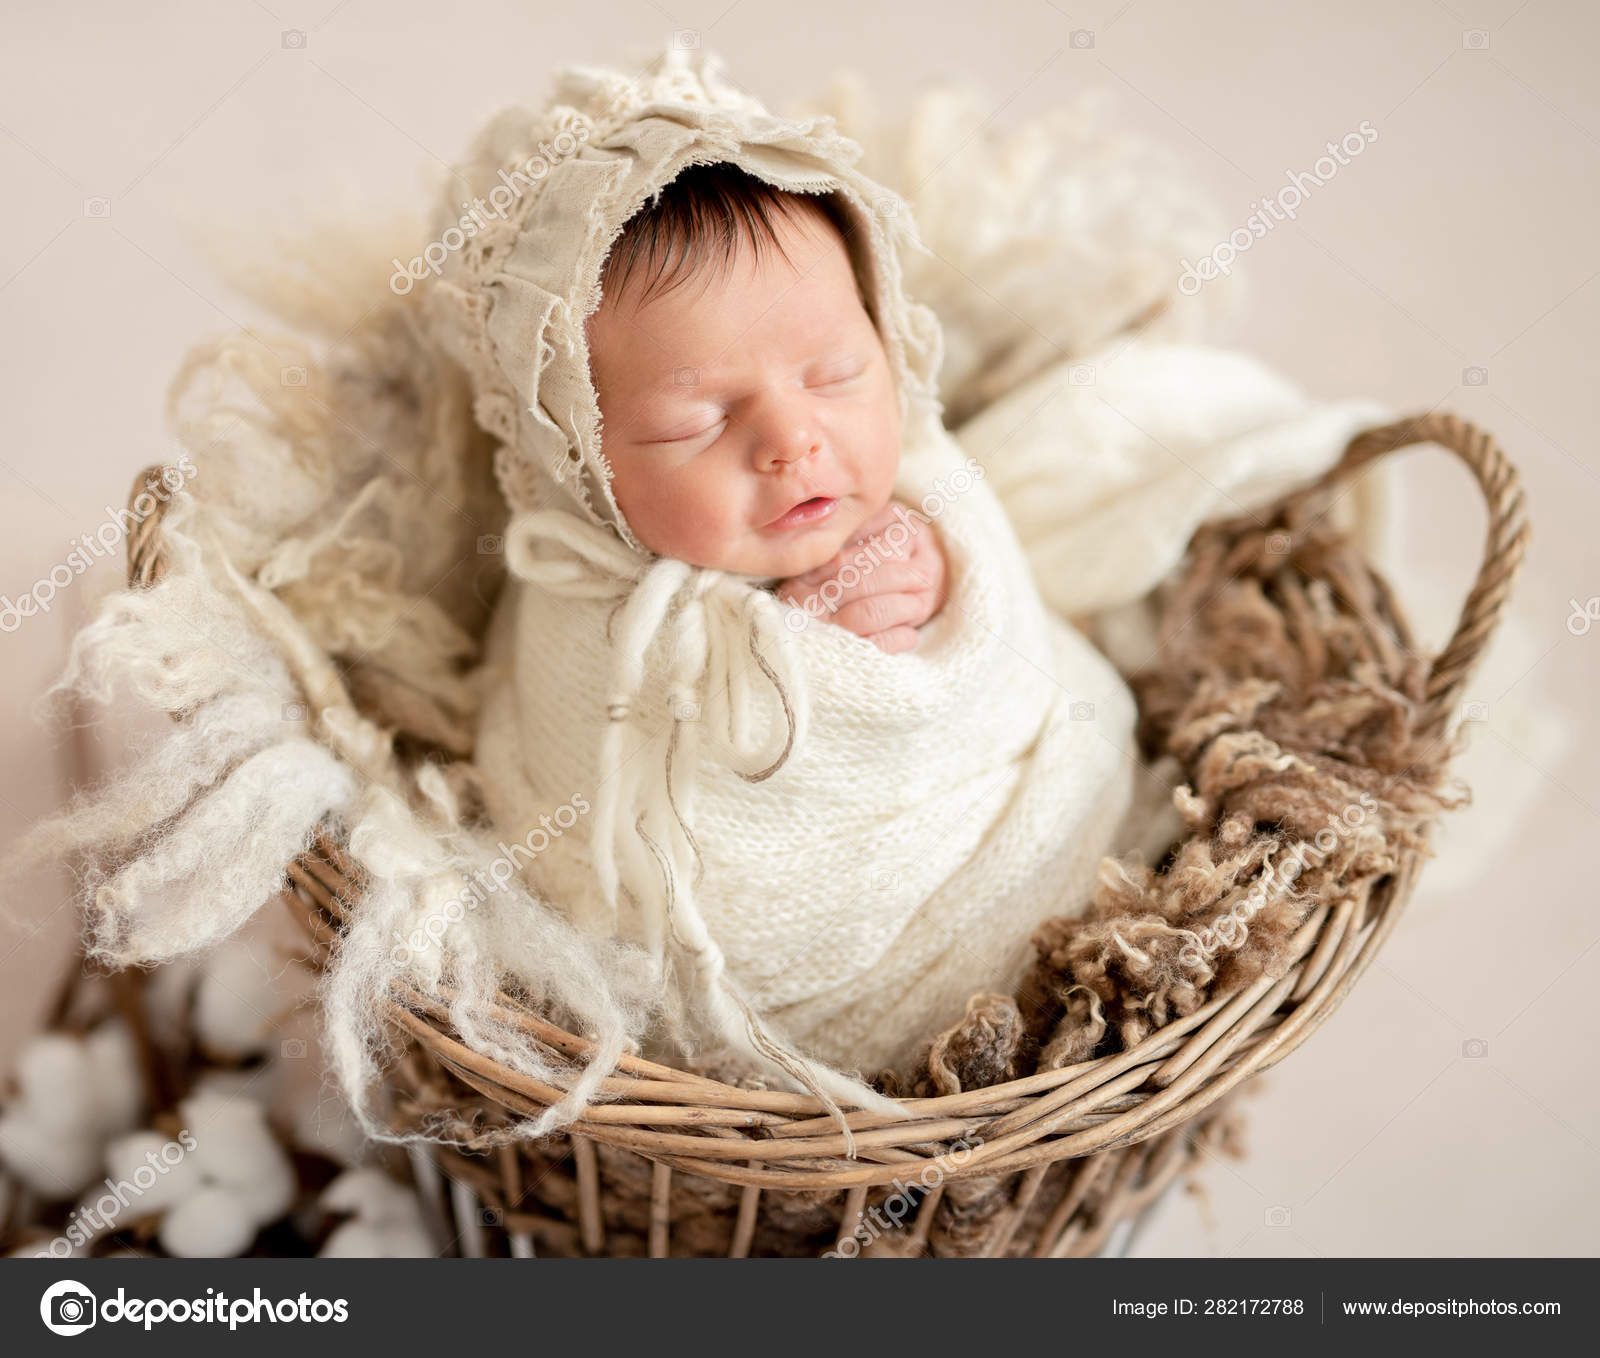 Sleeping Newborn Baby Girl Stock Photo C Tan4ikk 282172788